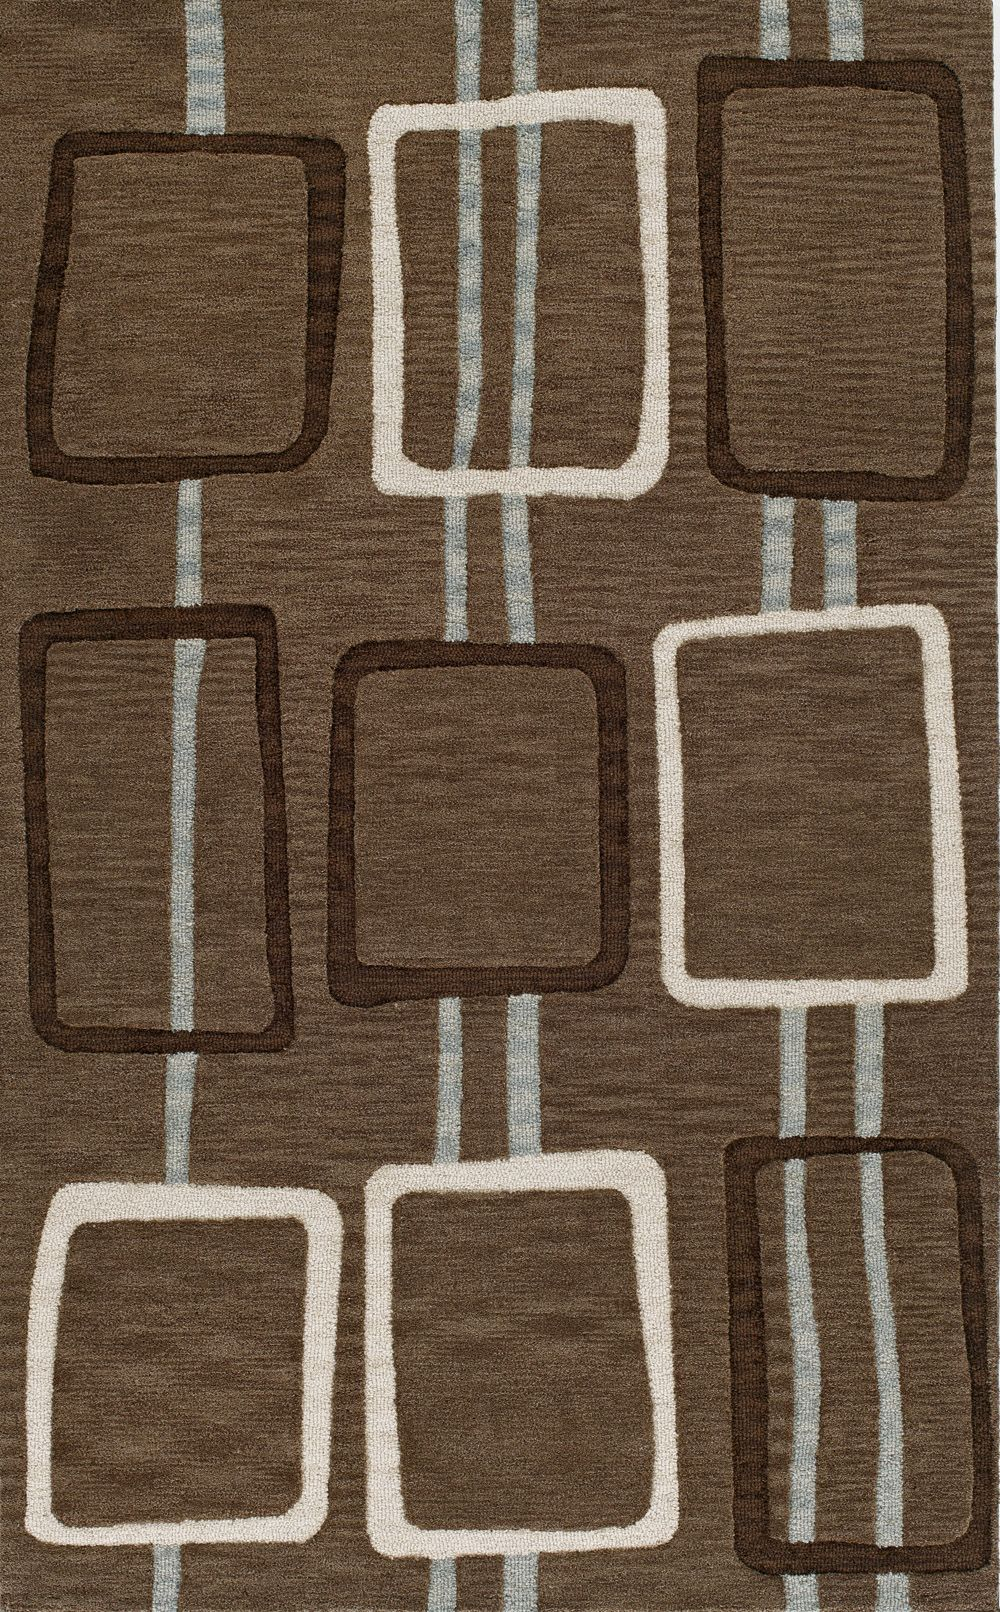 Dalyn Area Rugs Transitions Rugs Tr18 Gray Navy Cream Master Bedroom Dalyn Dalyn Rugs Transitional Rugs